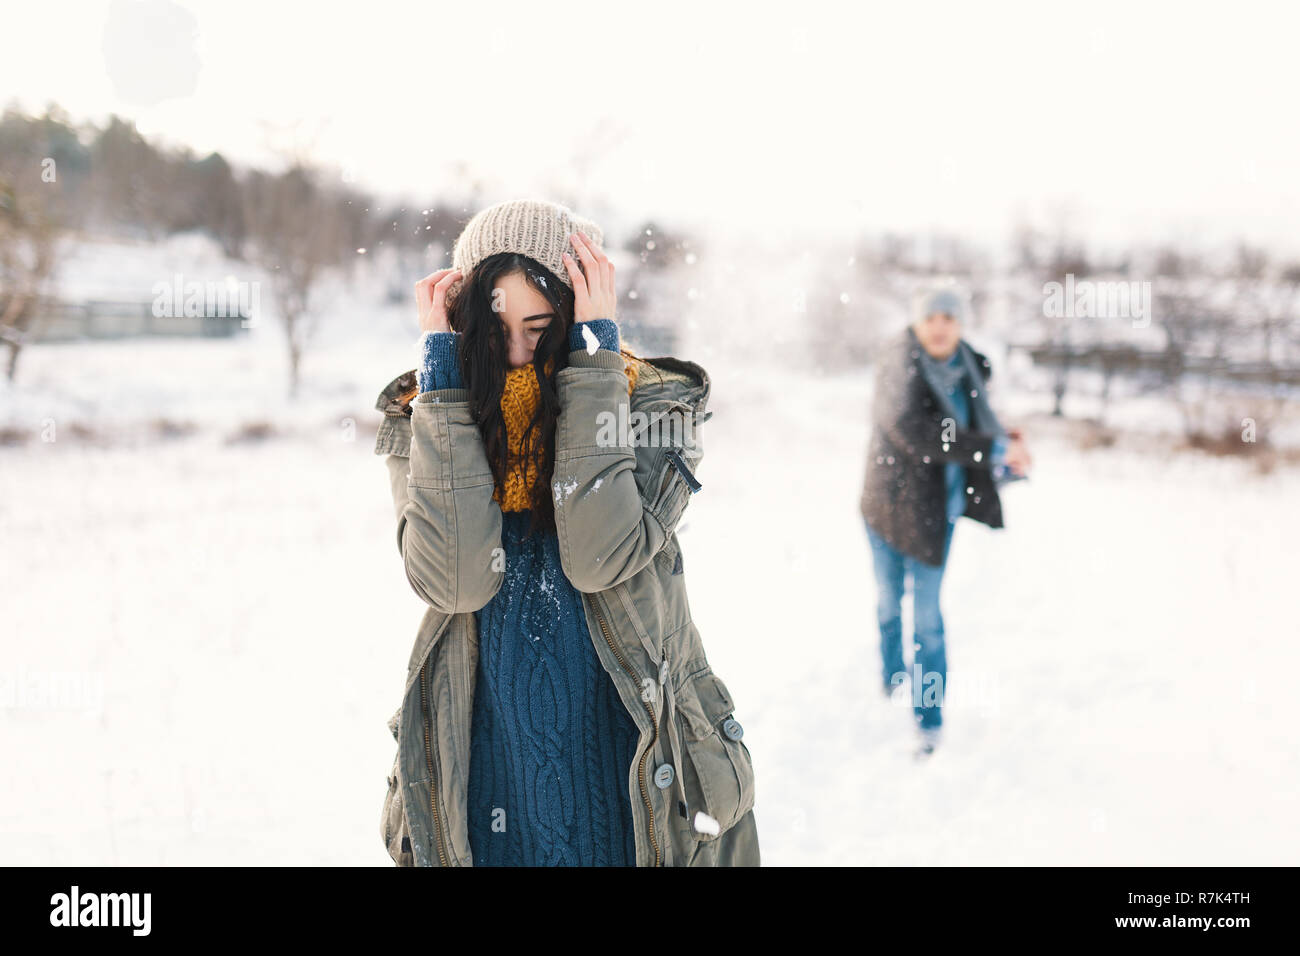 Snowball fight. Winter couple having fun playing in snow outdoors. Young joyful happy young man and woman. Stock Photo